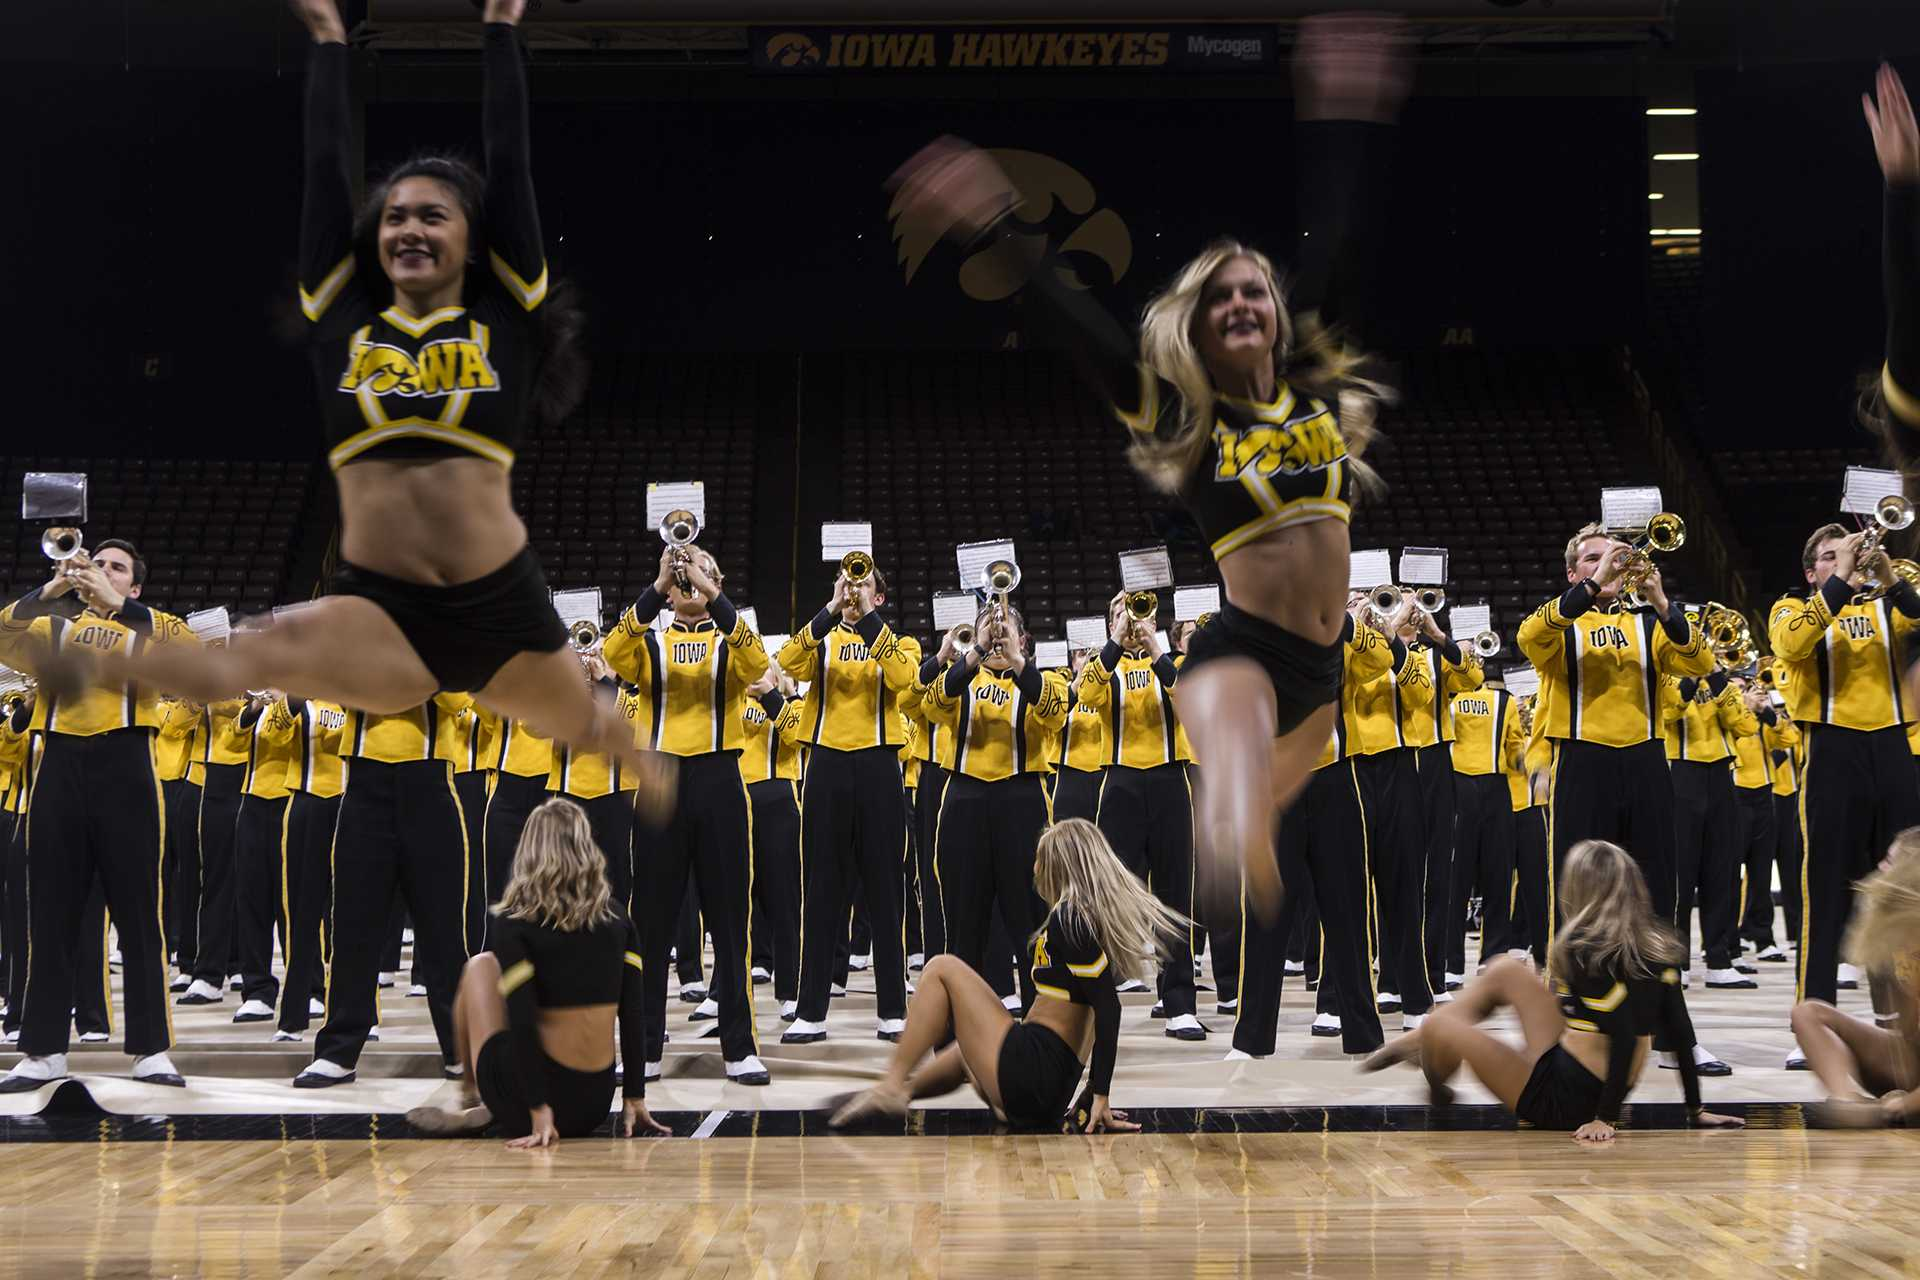 UI bands bedazzle at Extravaganza, acting as star of the football stadium